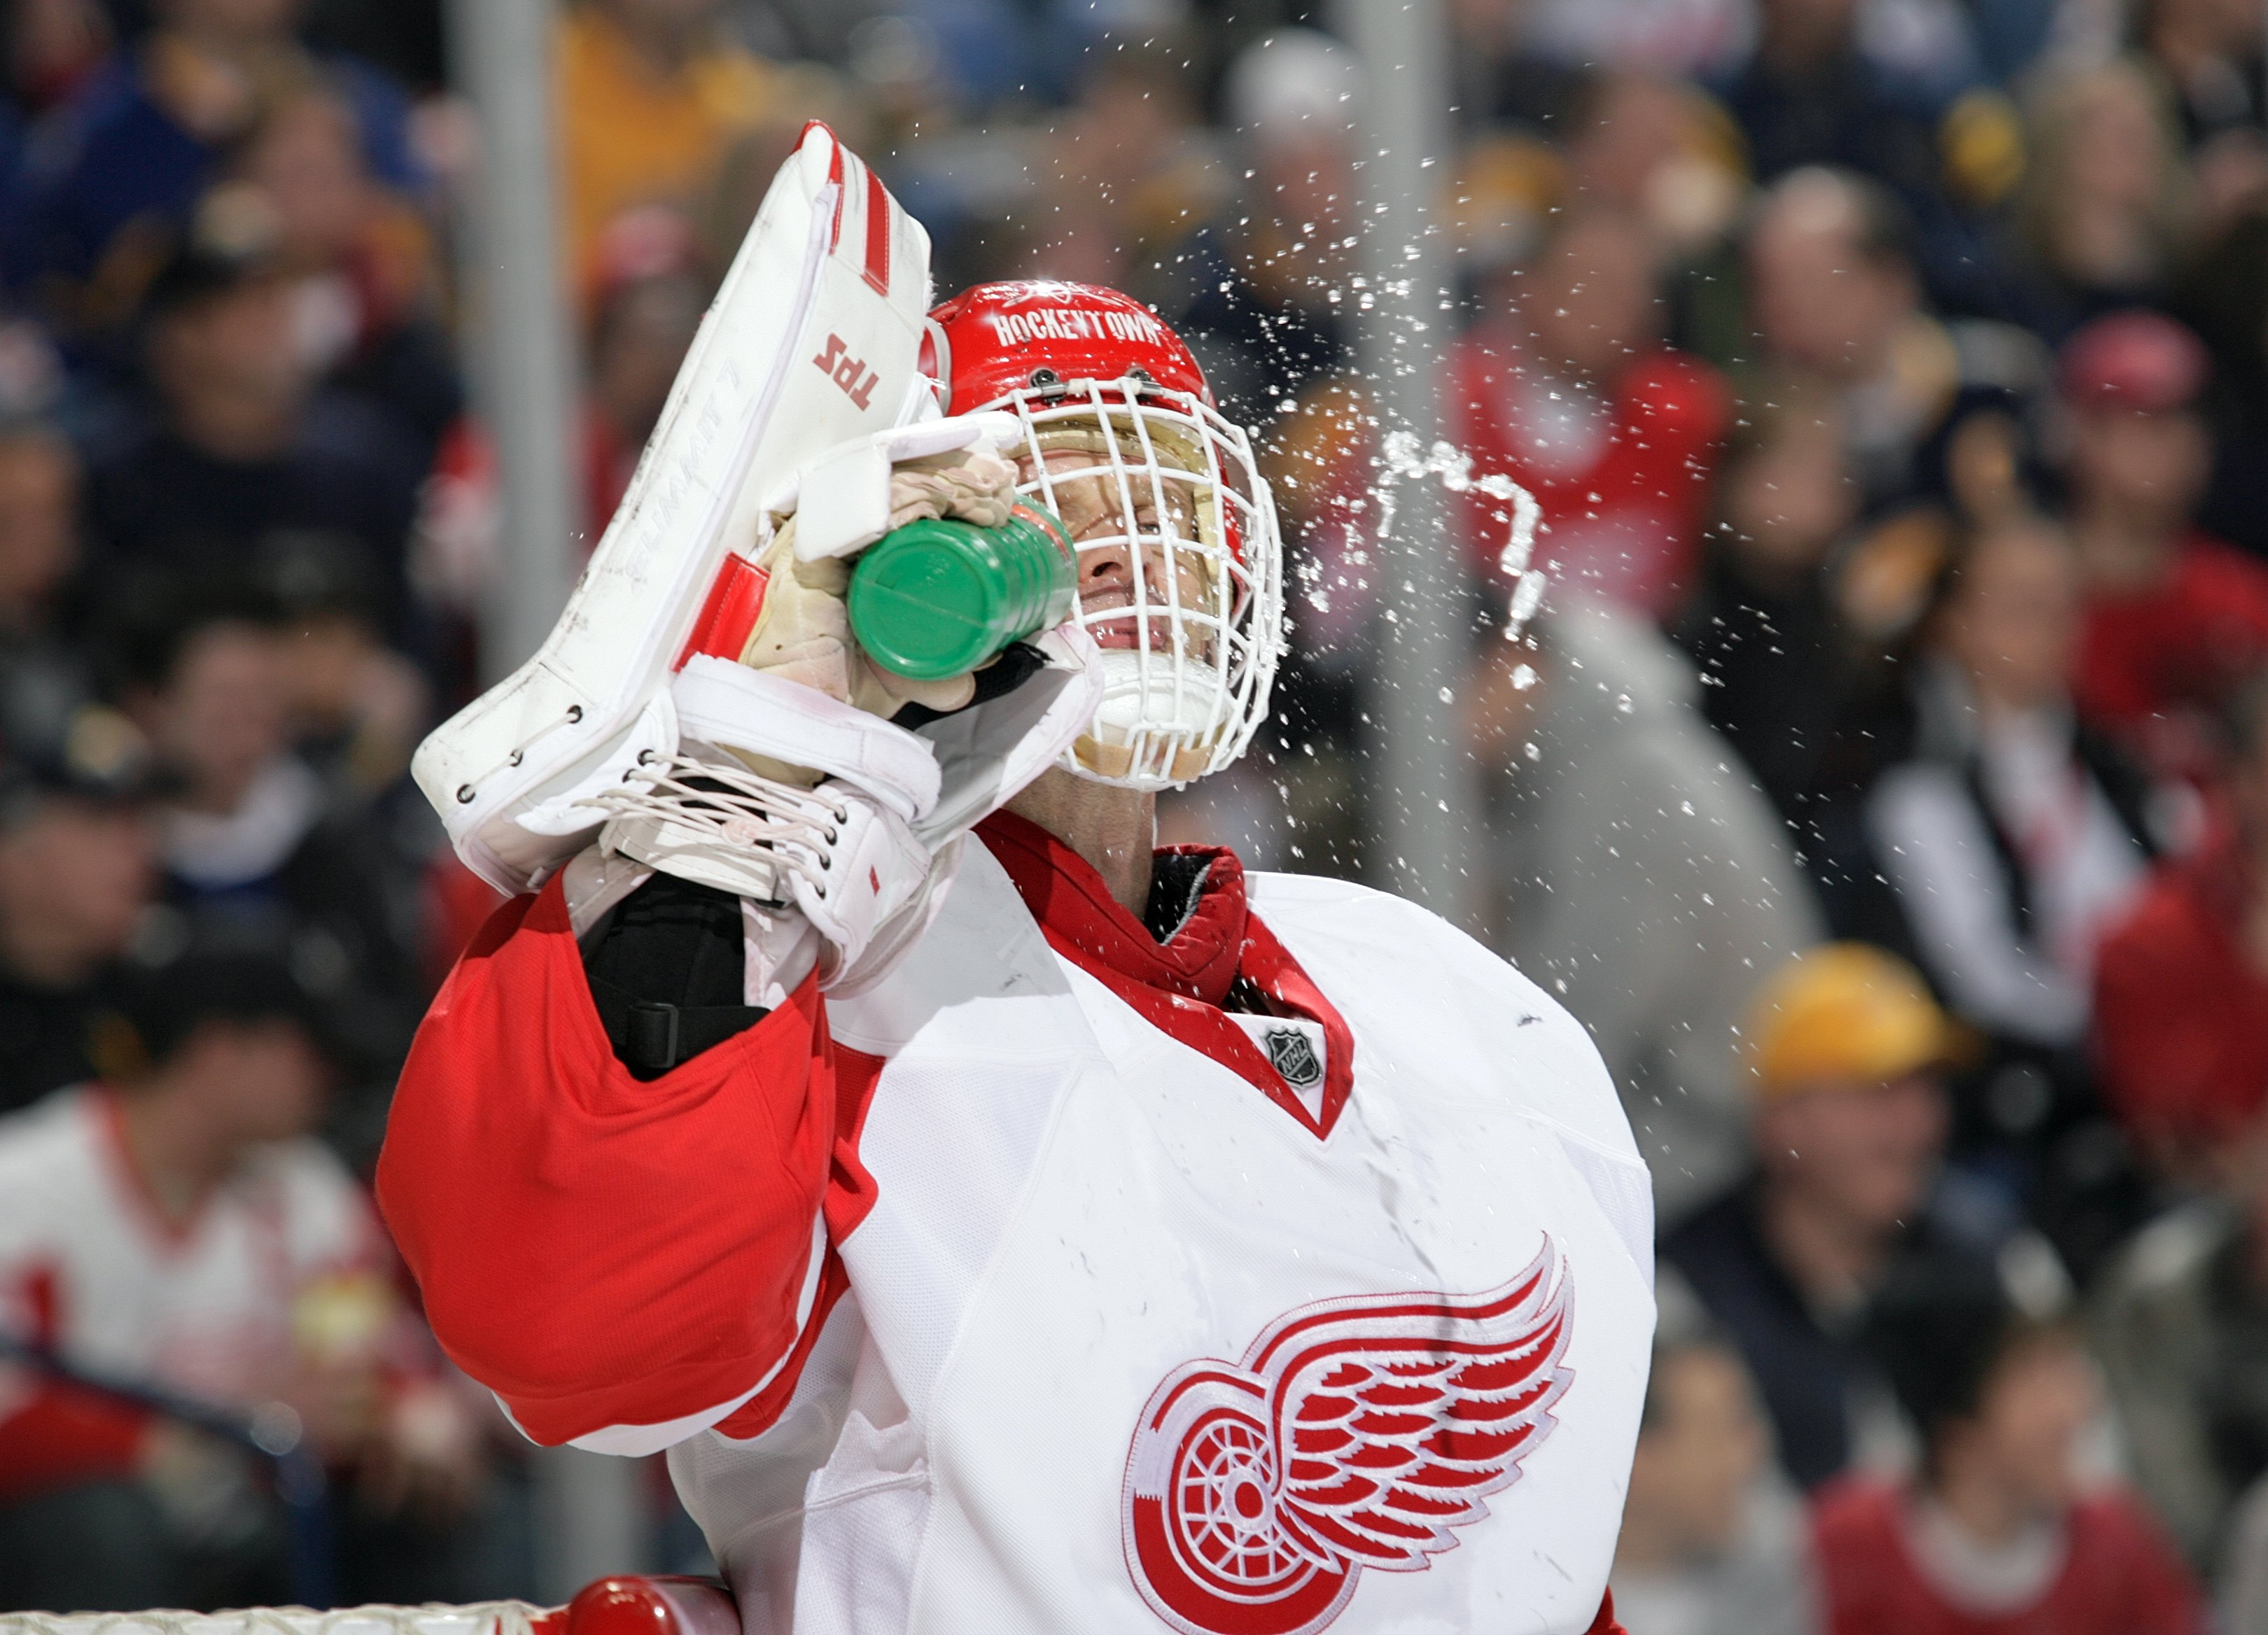 BUFFALO, NY - MARCH 2:  Goaltender Dominik Hasek #39 of the Detroit Red Wings takes in fluids during a break in NHL game action against the Buffalo Sabres on March 2, 2008 at HSBC Arena in Buffalo, New York. The Red Wings defeated the Sabres 4-2. (Photo b